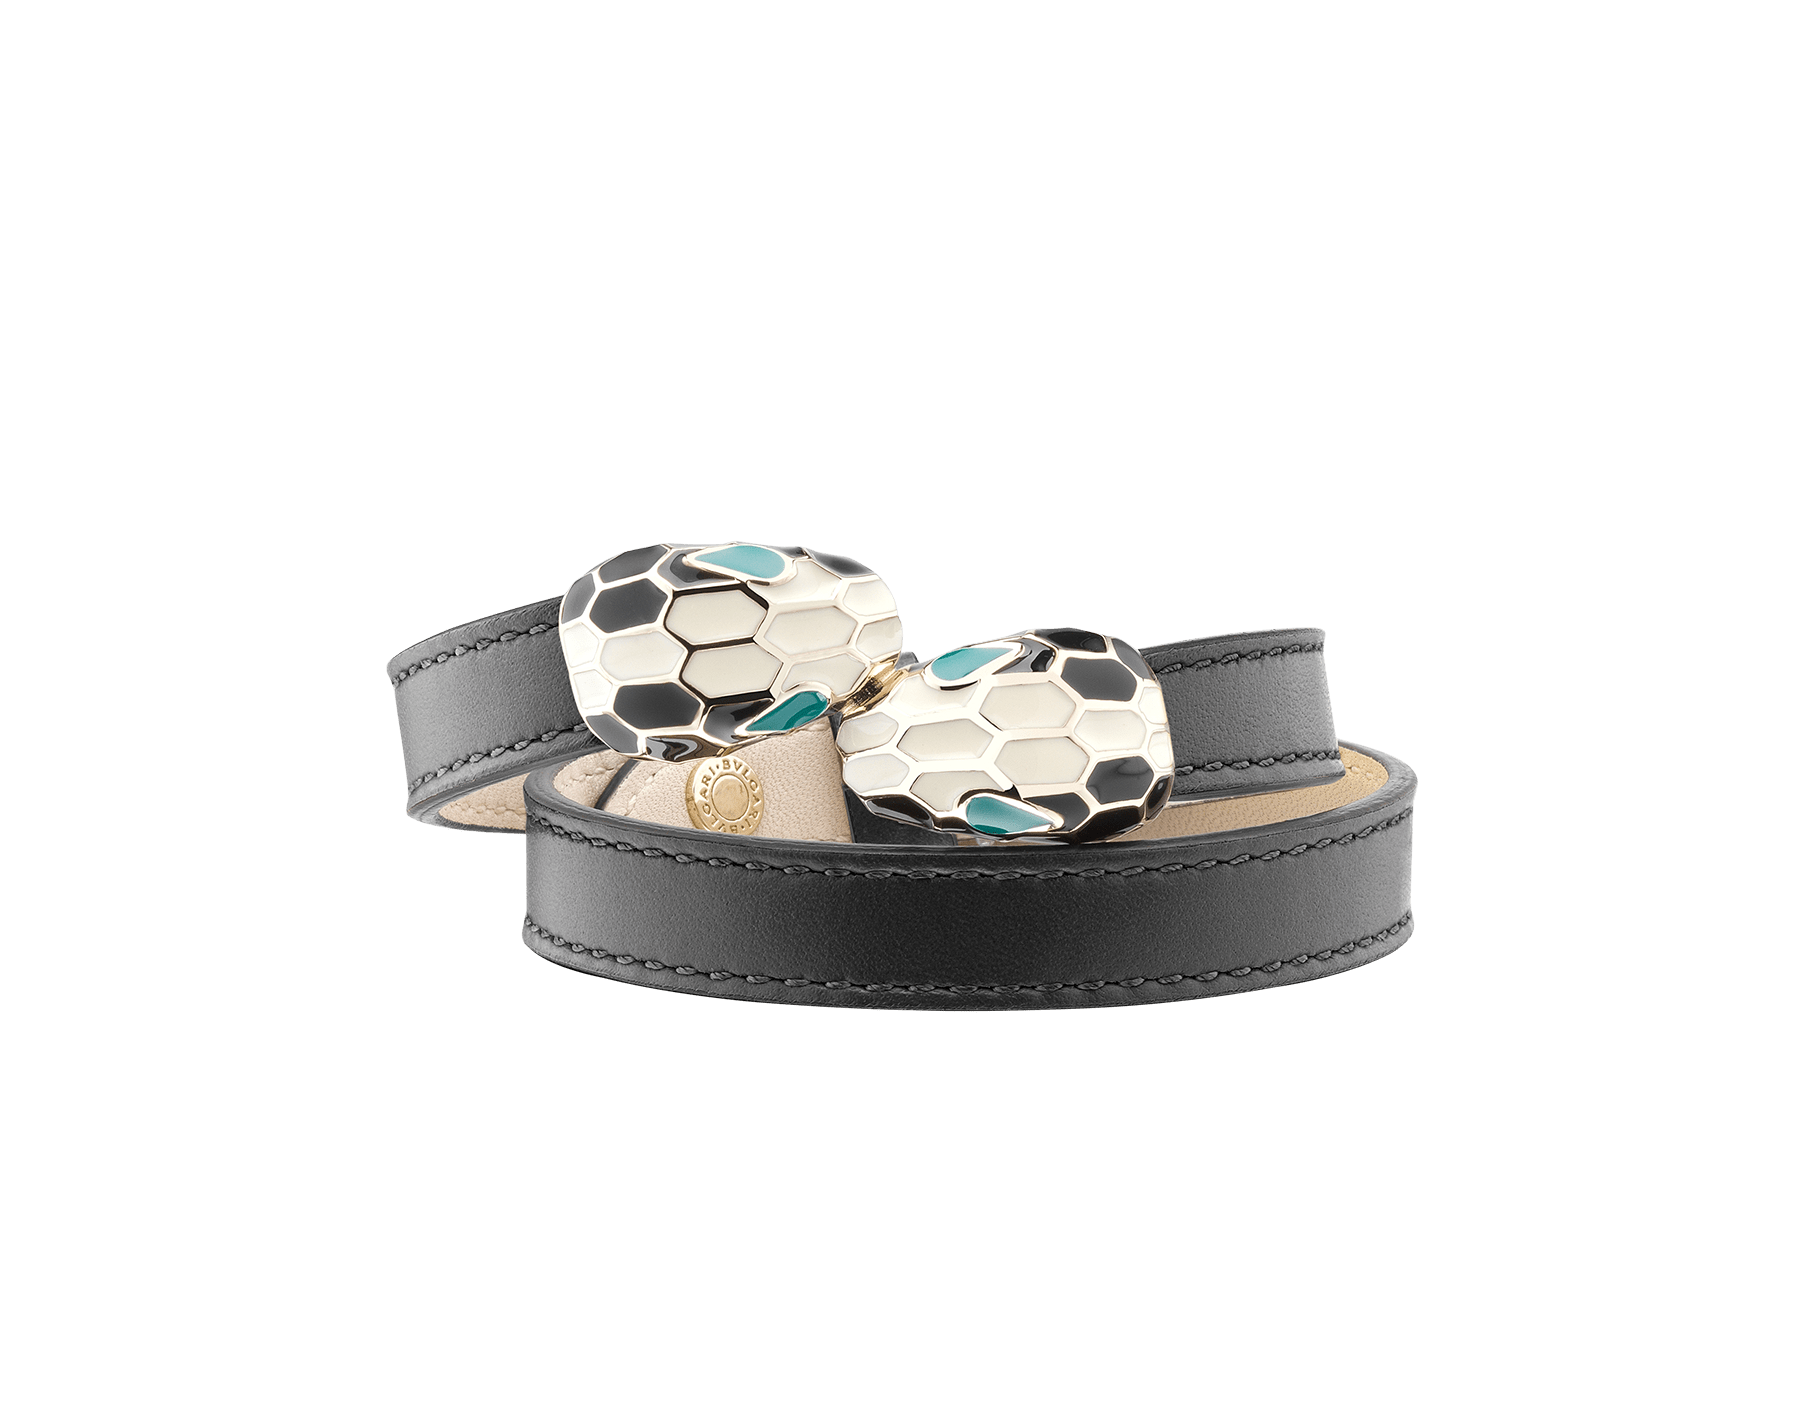 Multi-coiled bracelet in black calf leather. Brass light gold plated iconic contraire Serpenti head closure in black and white enamel with malachite enamel eyes. MCSerp-CL-B image 1